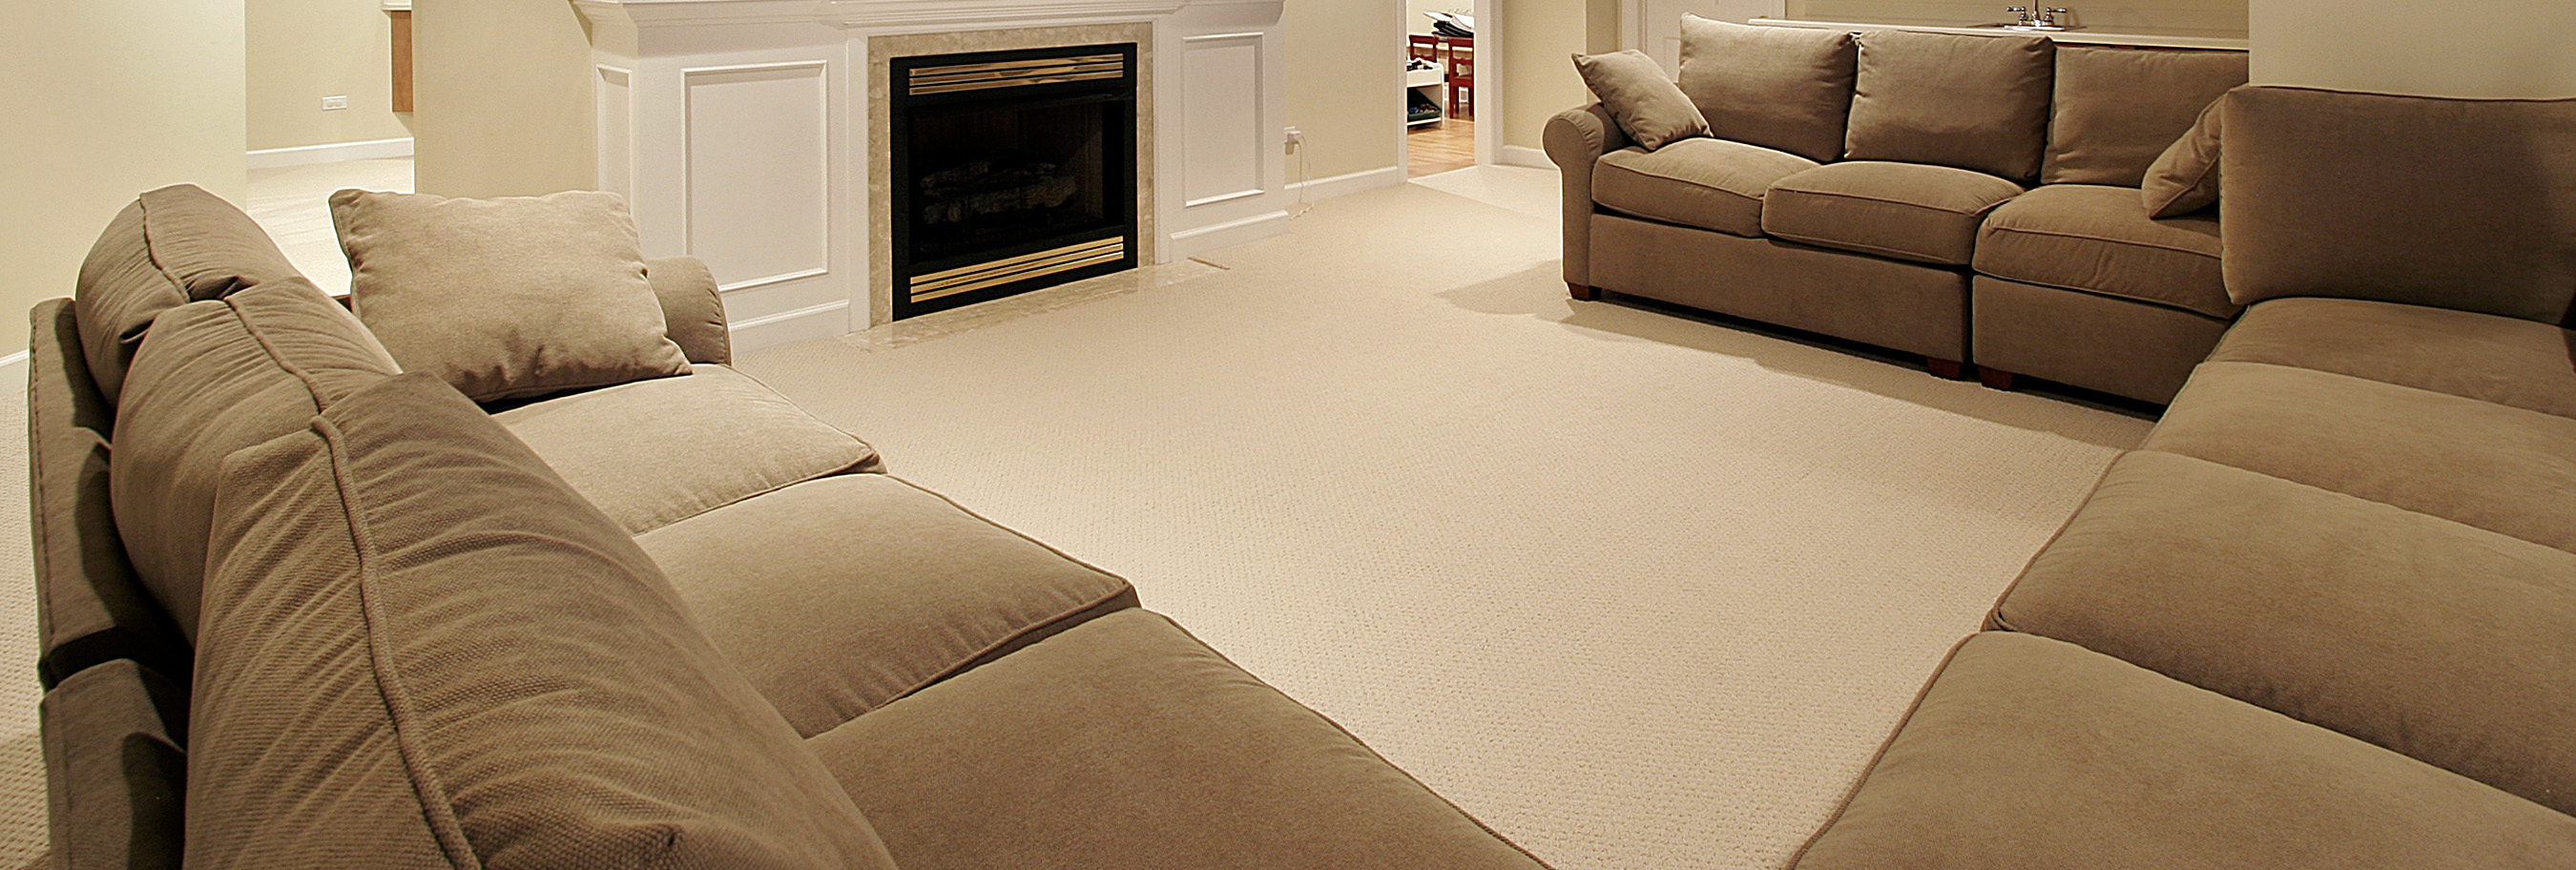 2   3. Carpet Cleaners  Amarillo Carpet company  Tile Grout Cleaning